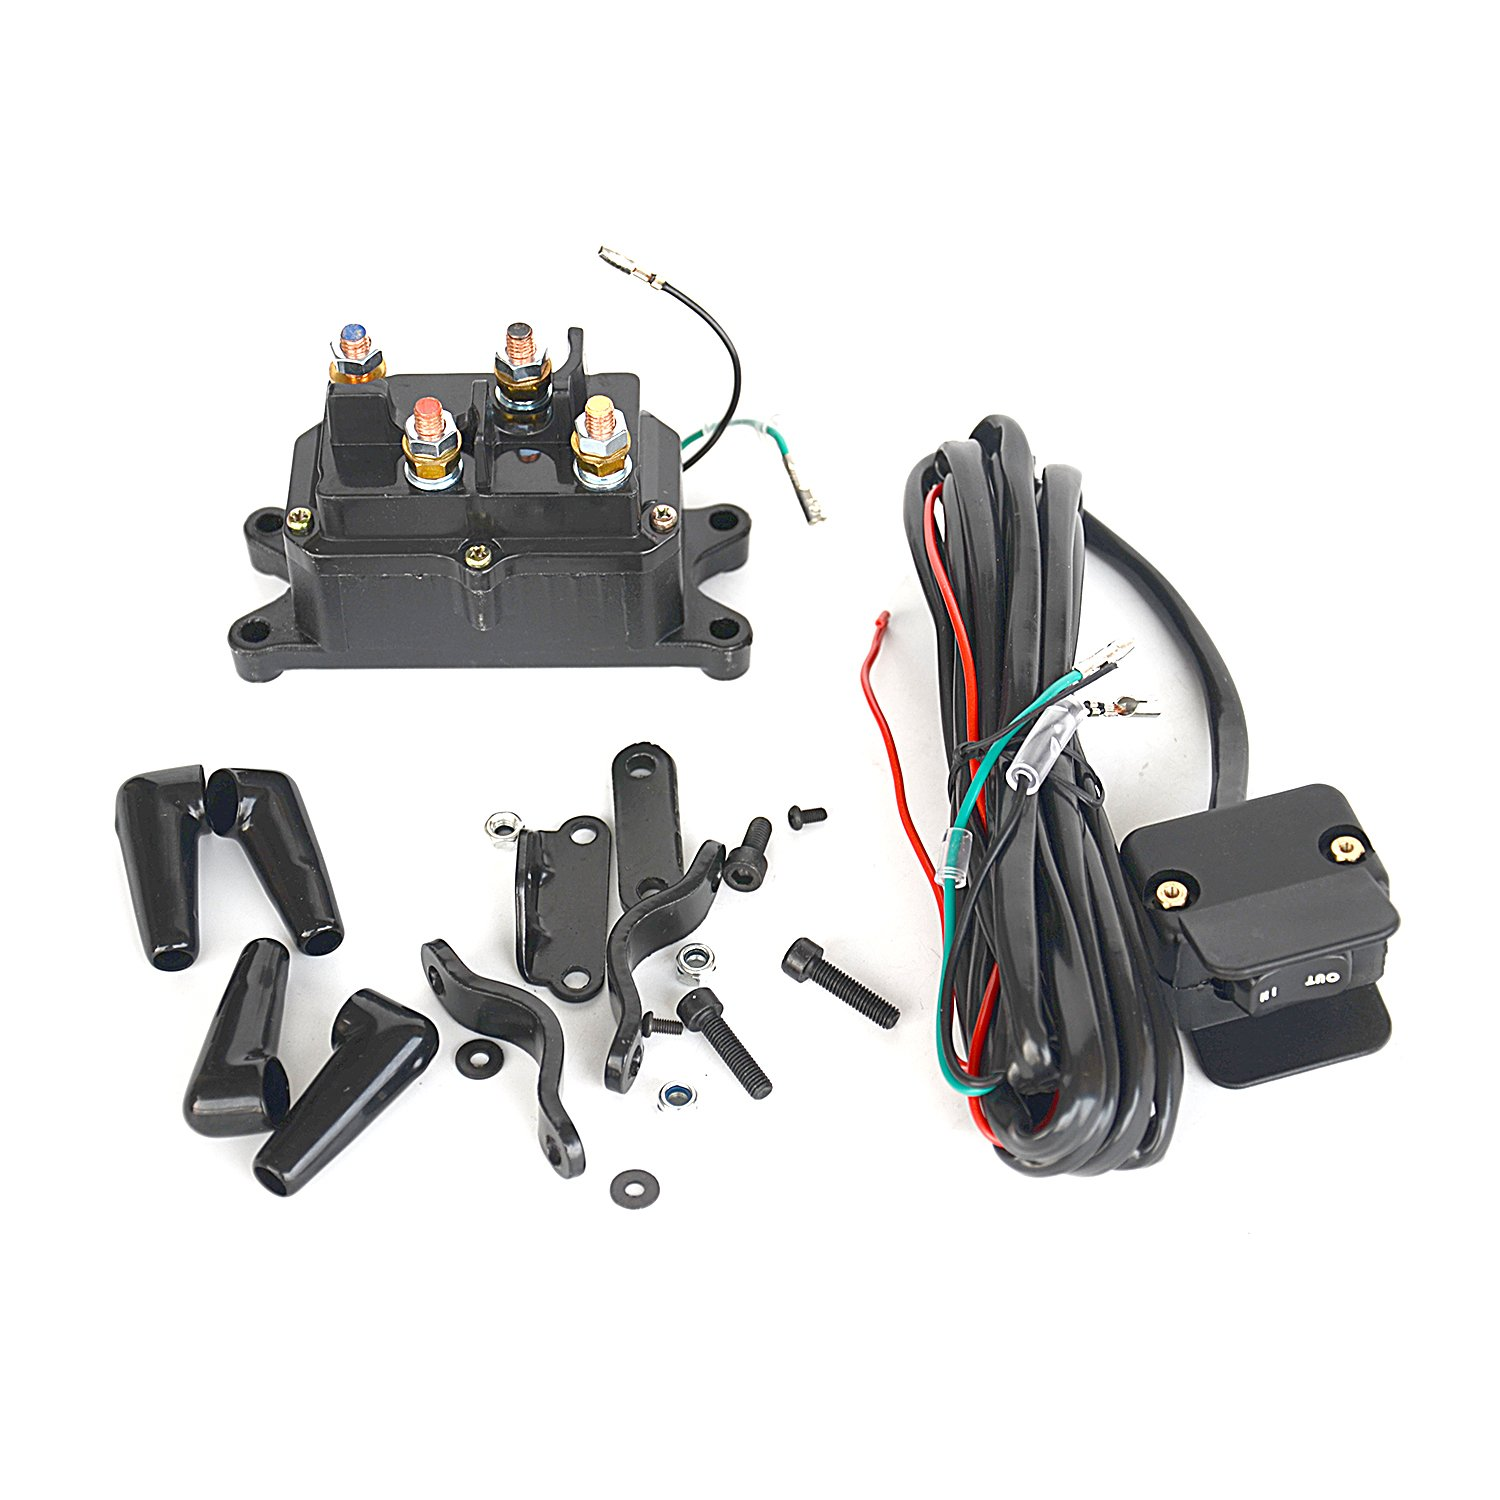 12V Solenoid Relay Contactor & Winch Rocker Thumb Switch Combo for ATV UTV-New GELUOXI